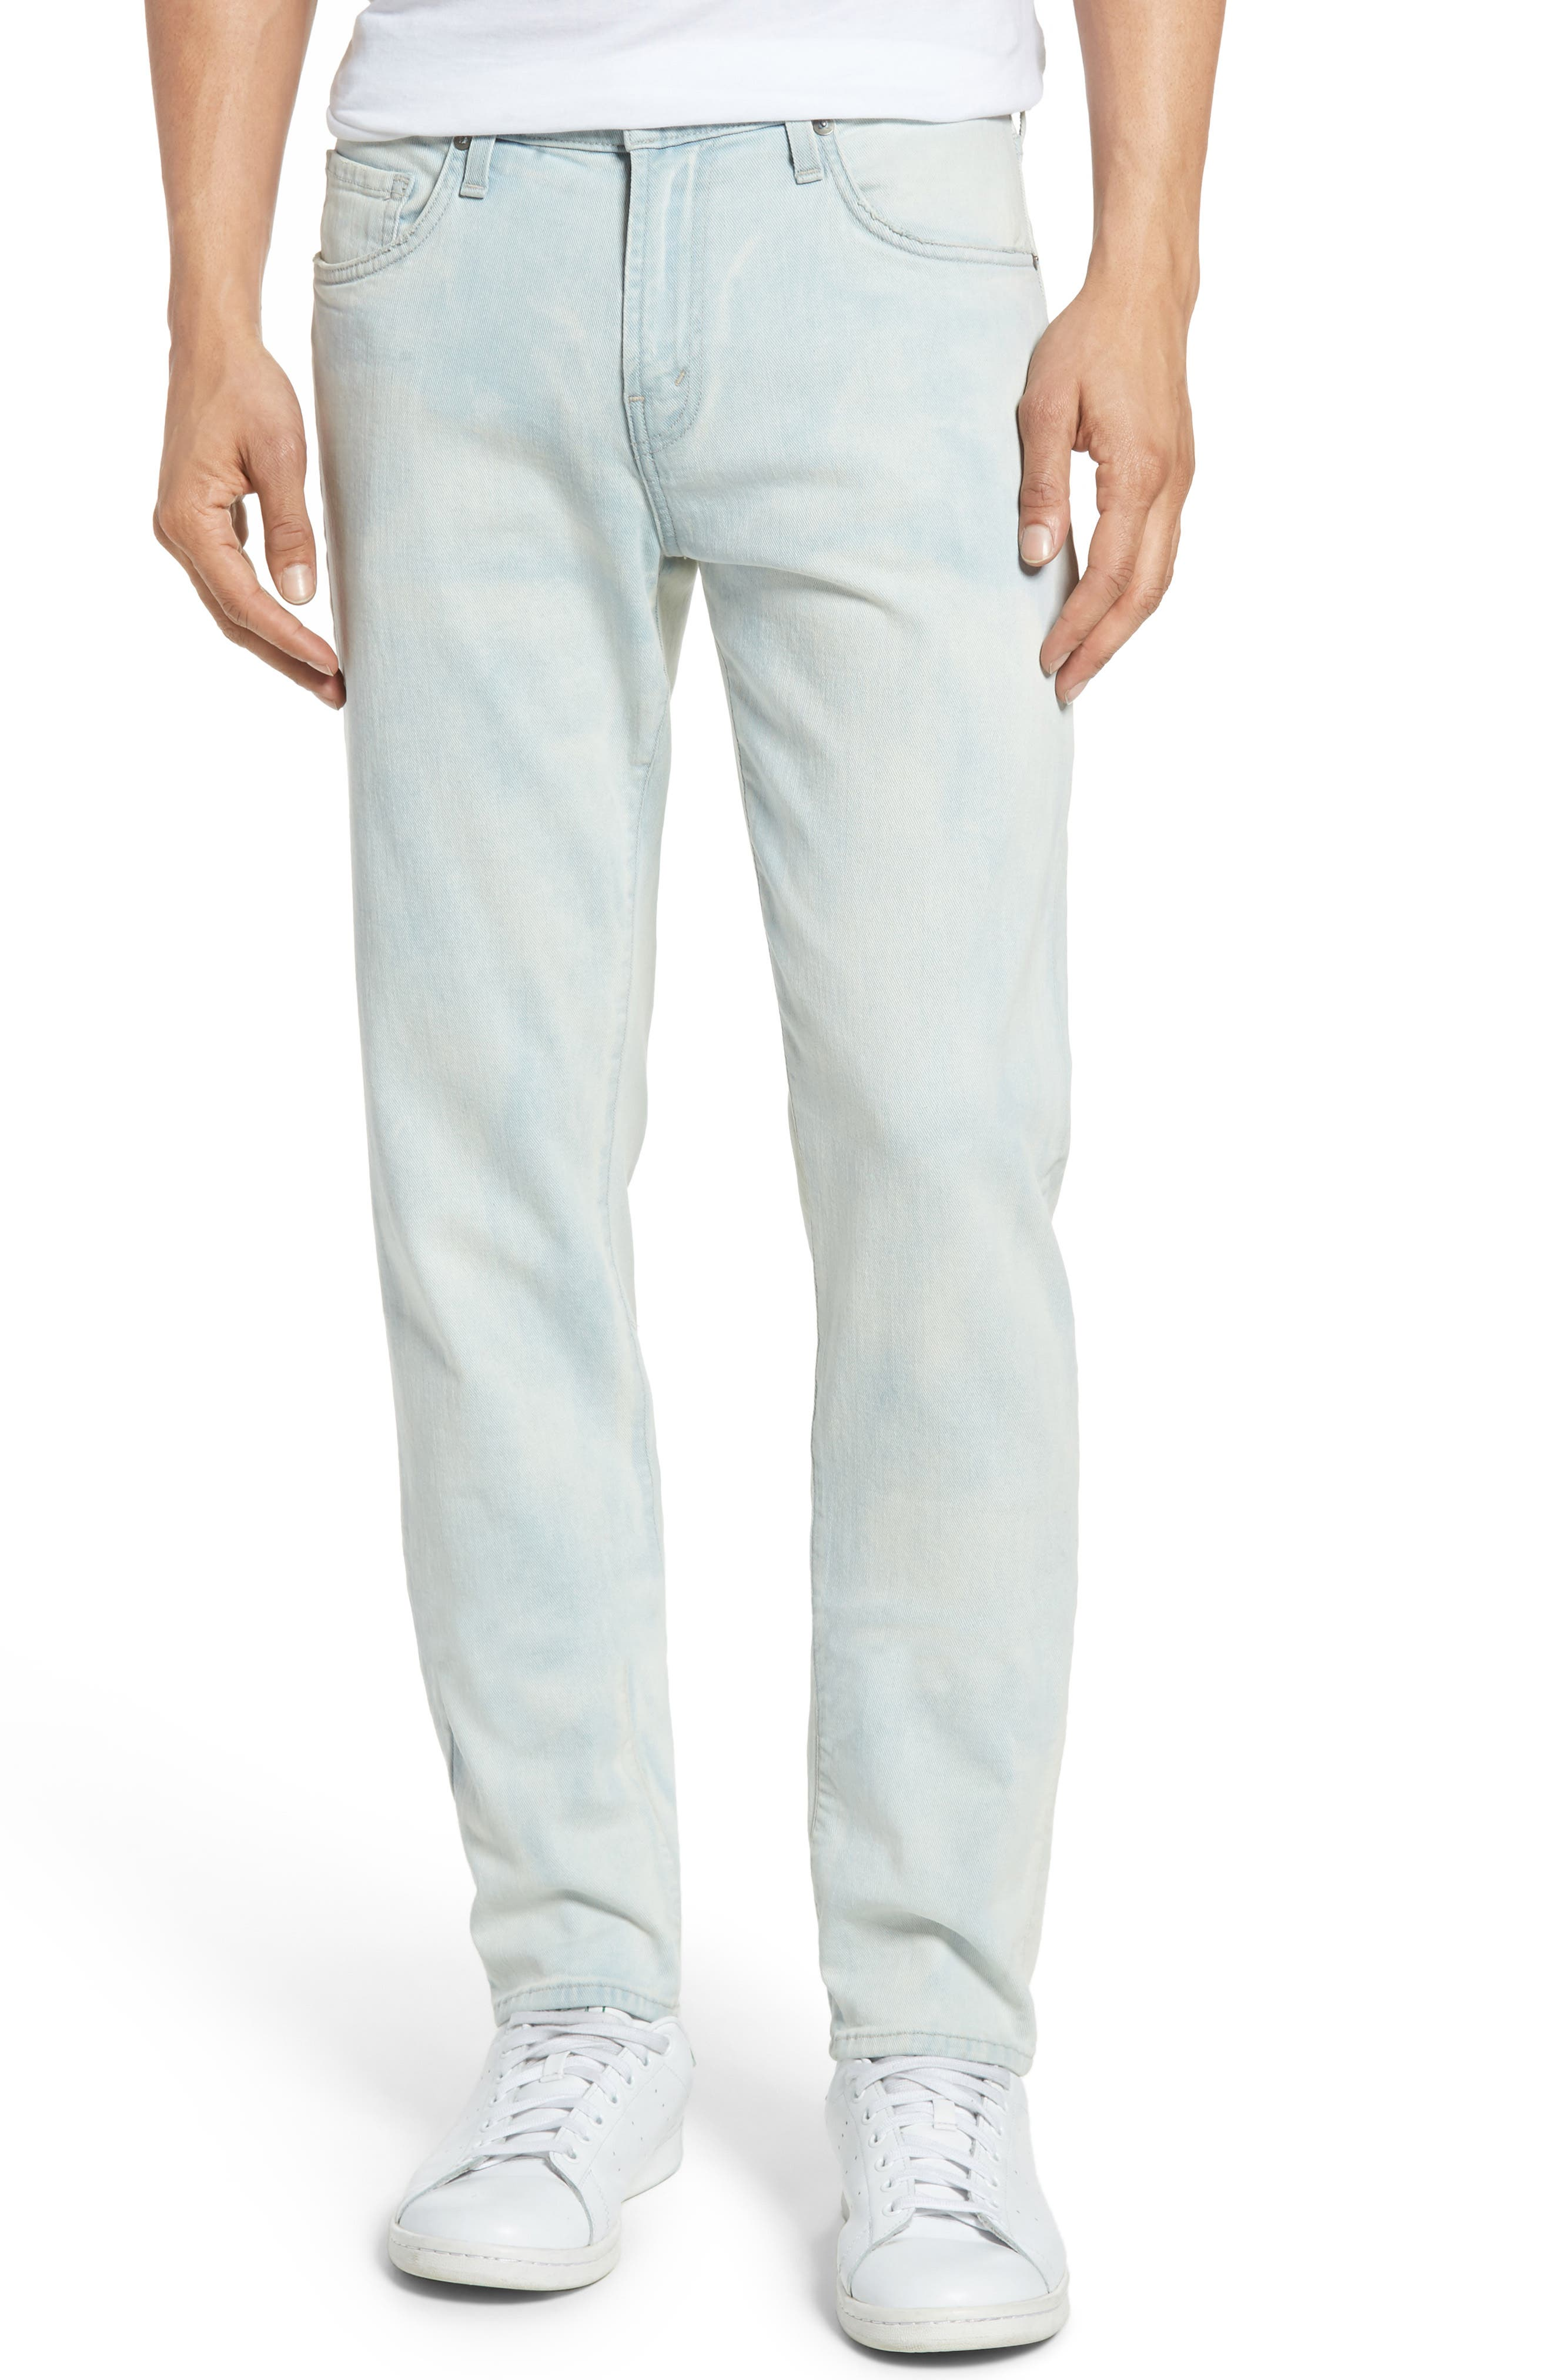 Tyler Slim Fit Jeans,                         Main,                         color, Halogy